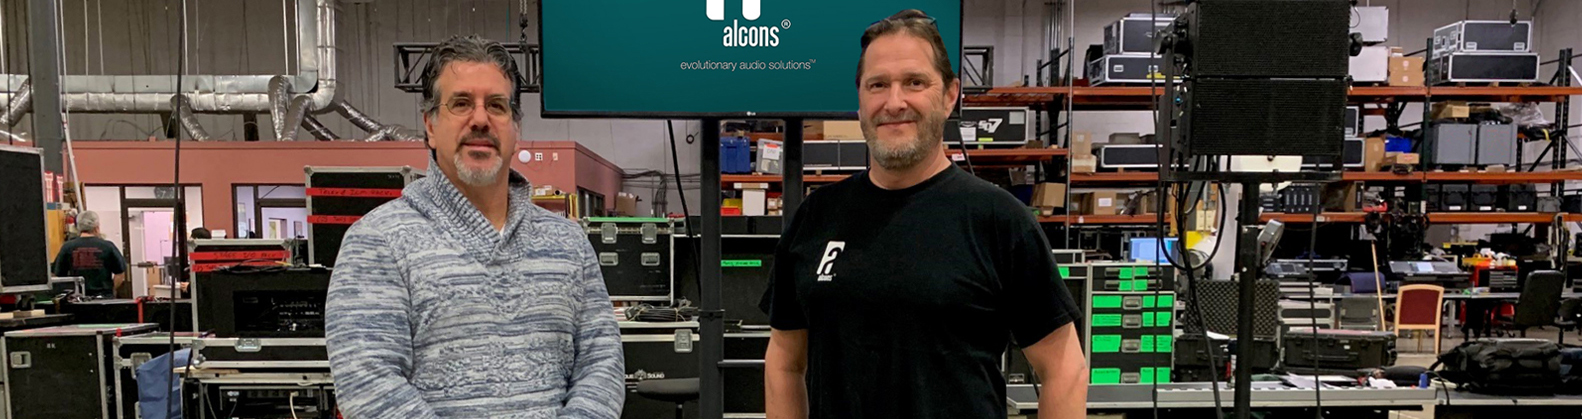 Mark Meding, On The Road Marketing (left) and David Rahn, Alcons Audio USA (right).